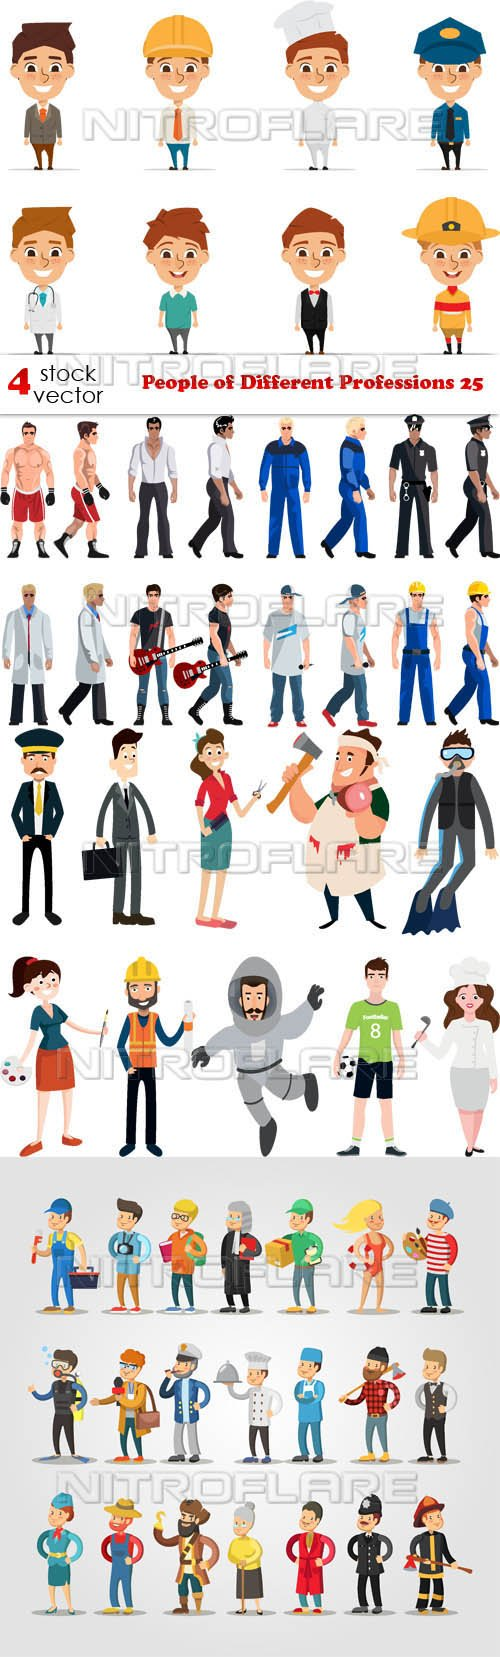 Vectors - People of Different Professions 25